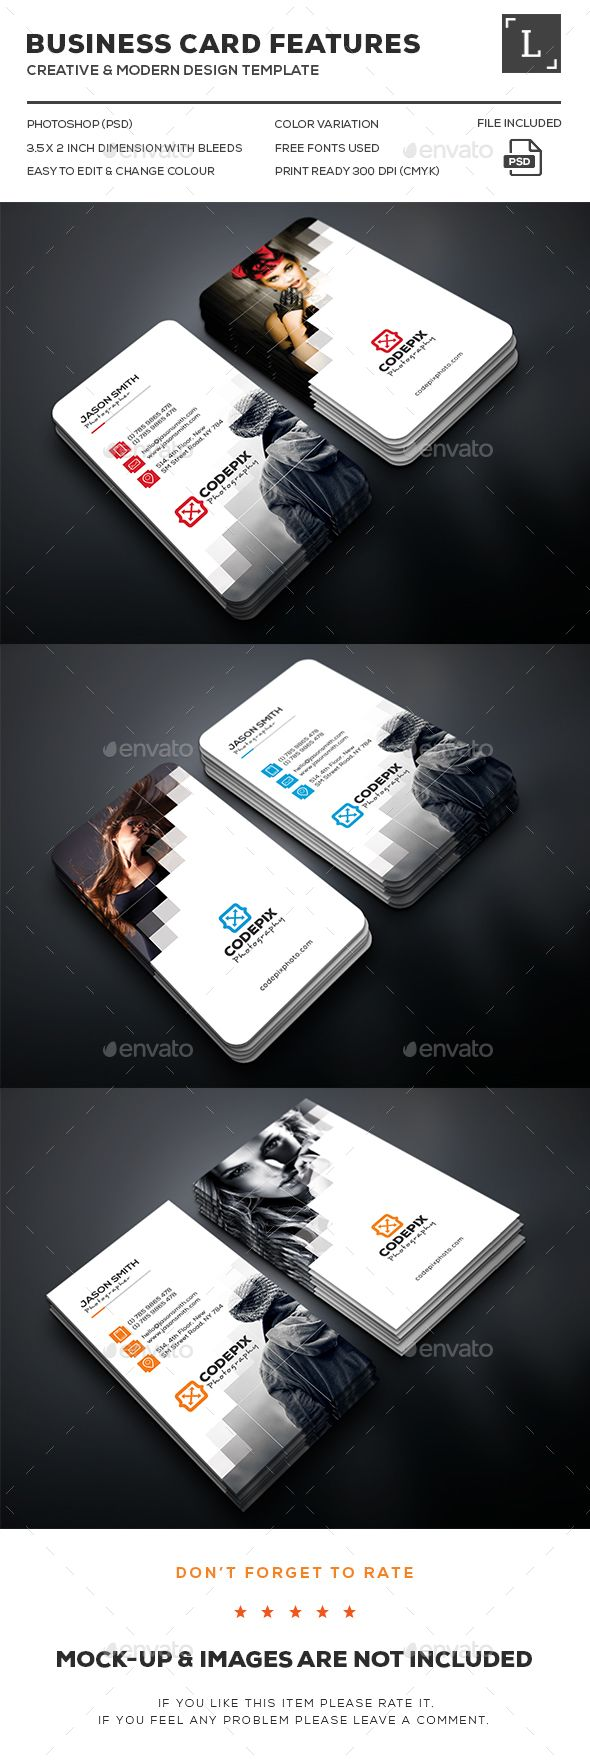 Pixel Photography Business Card Template PSD. Download here: http://graphicriver.net/item/pixel-photography-business-card/16096489?ref=ksioks